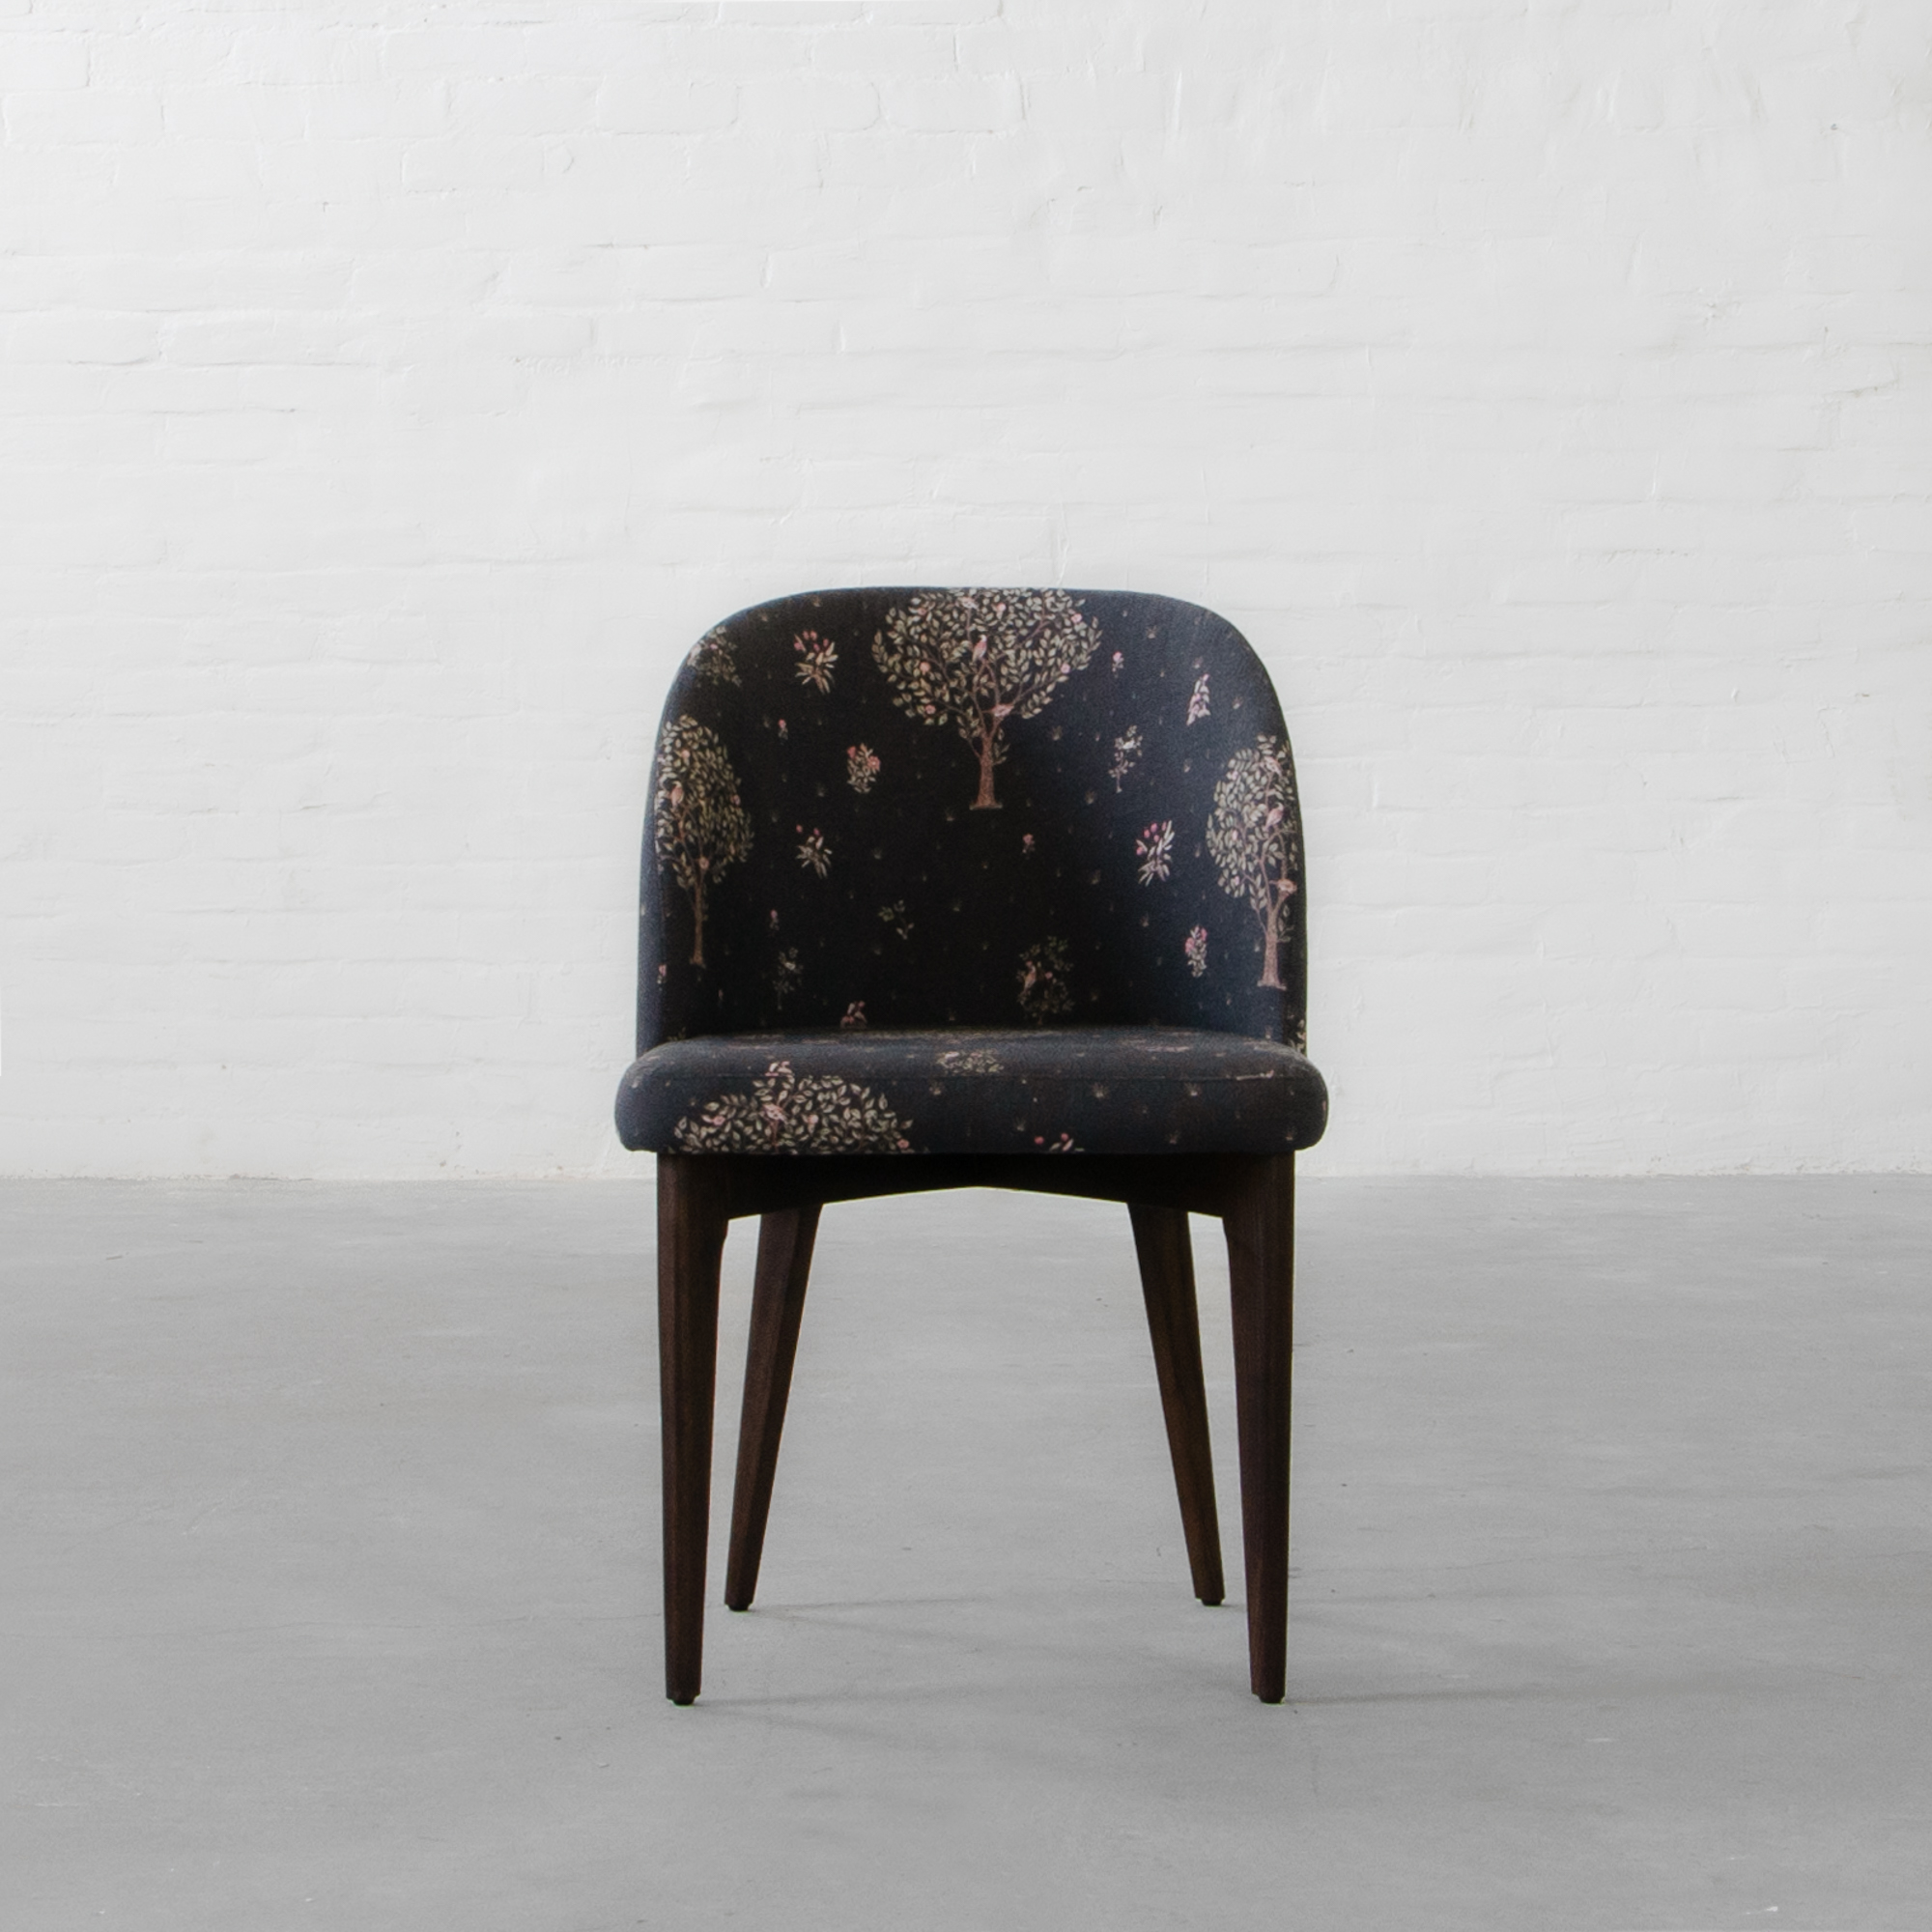 Groovy Dublin Dining Chair Caraccident5 Cool Chair Designs And Ideas Caraccident5Info